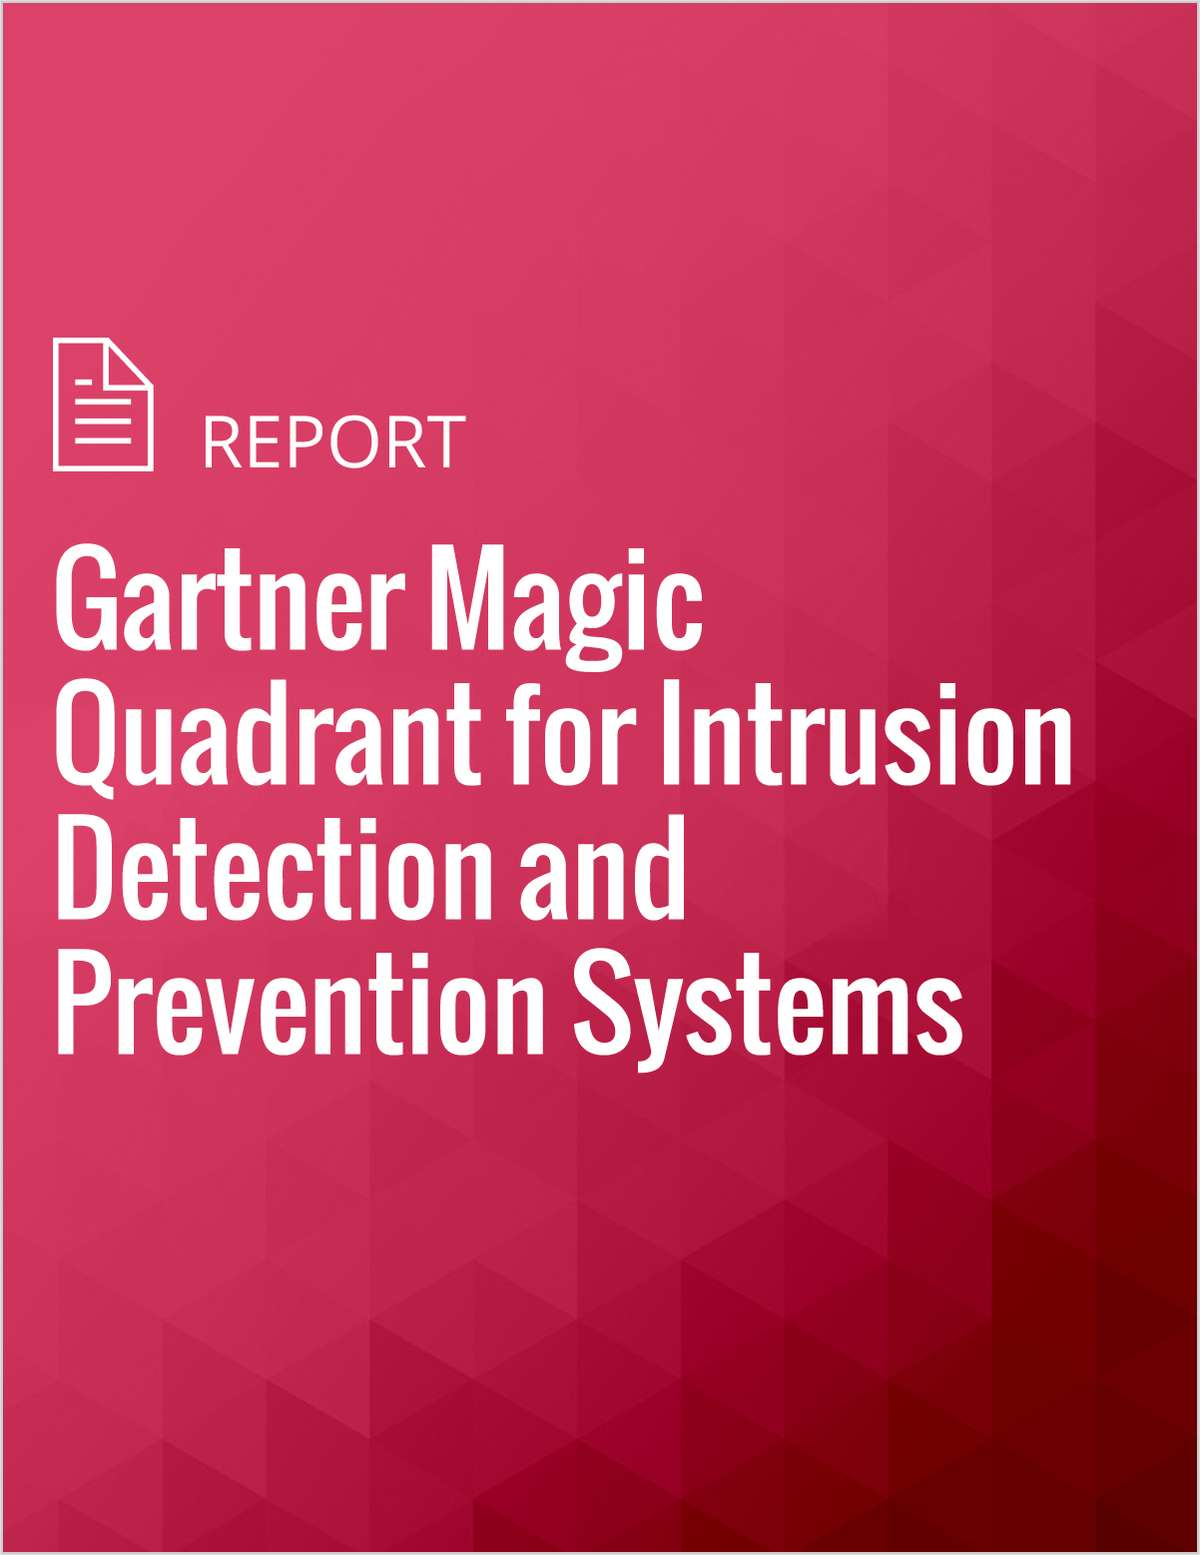 Gartner Magic Quadrant for Intrusion Detection and Prevention Systems